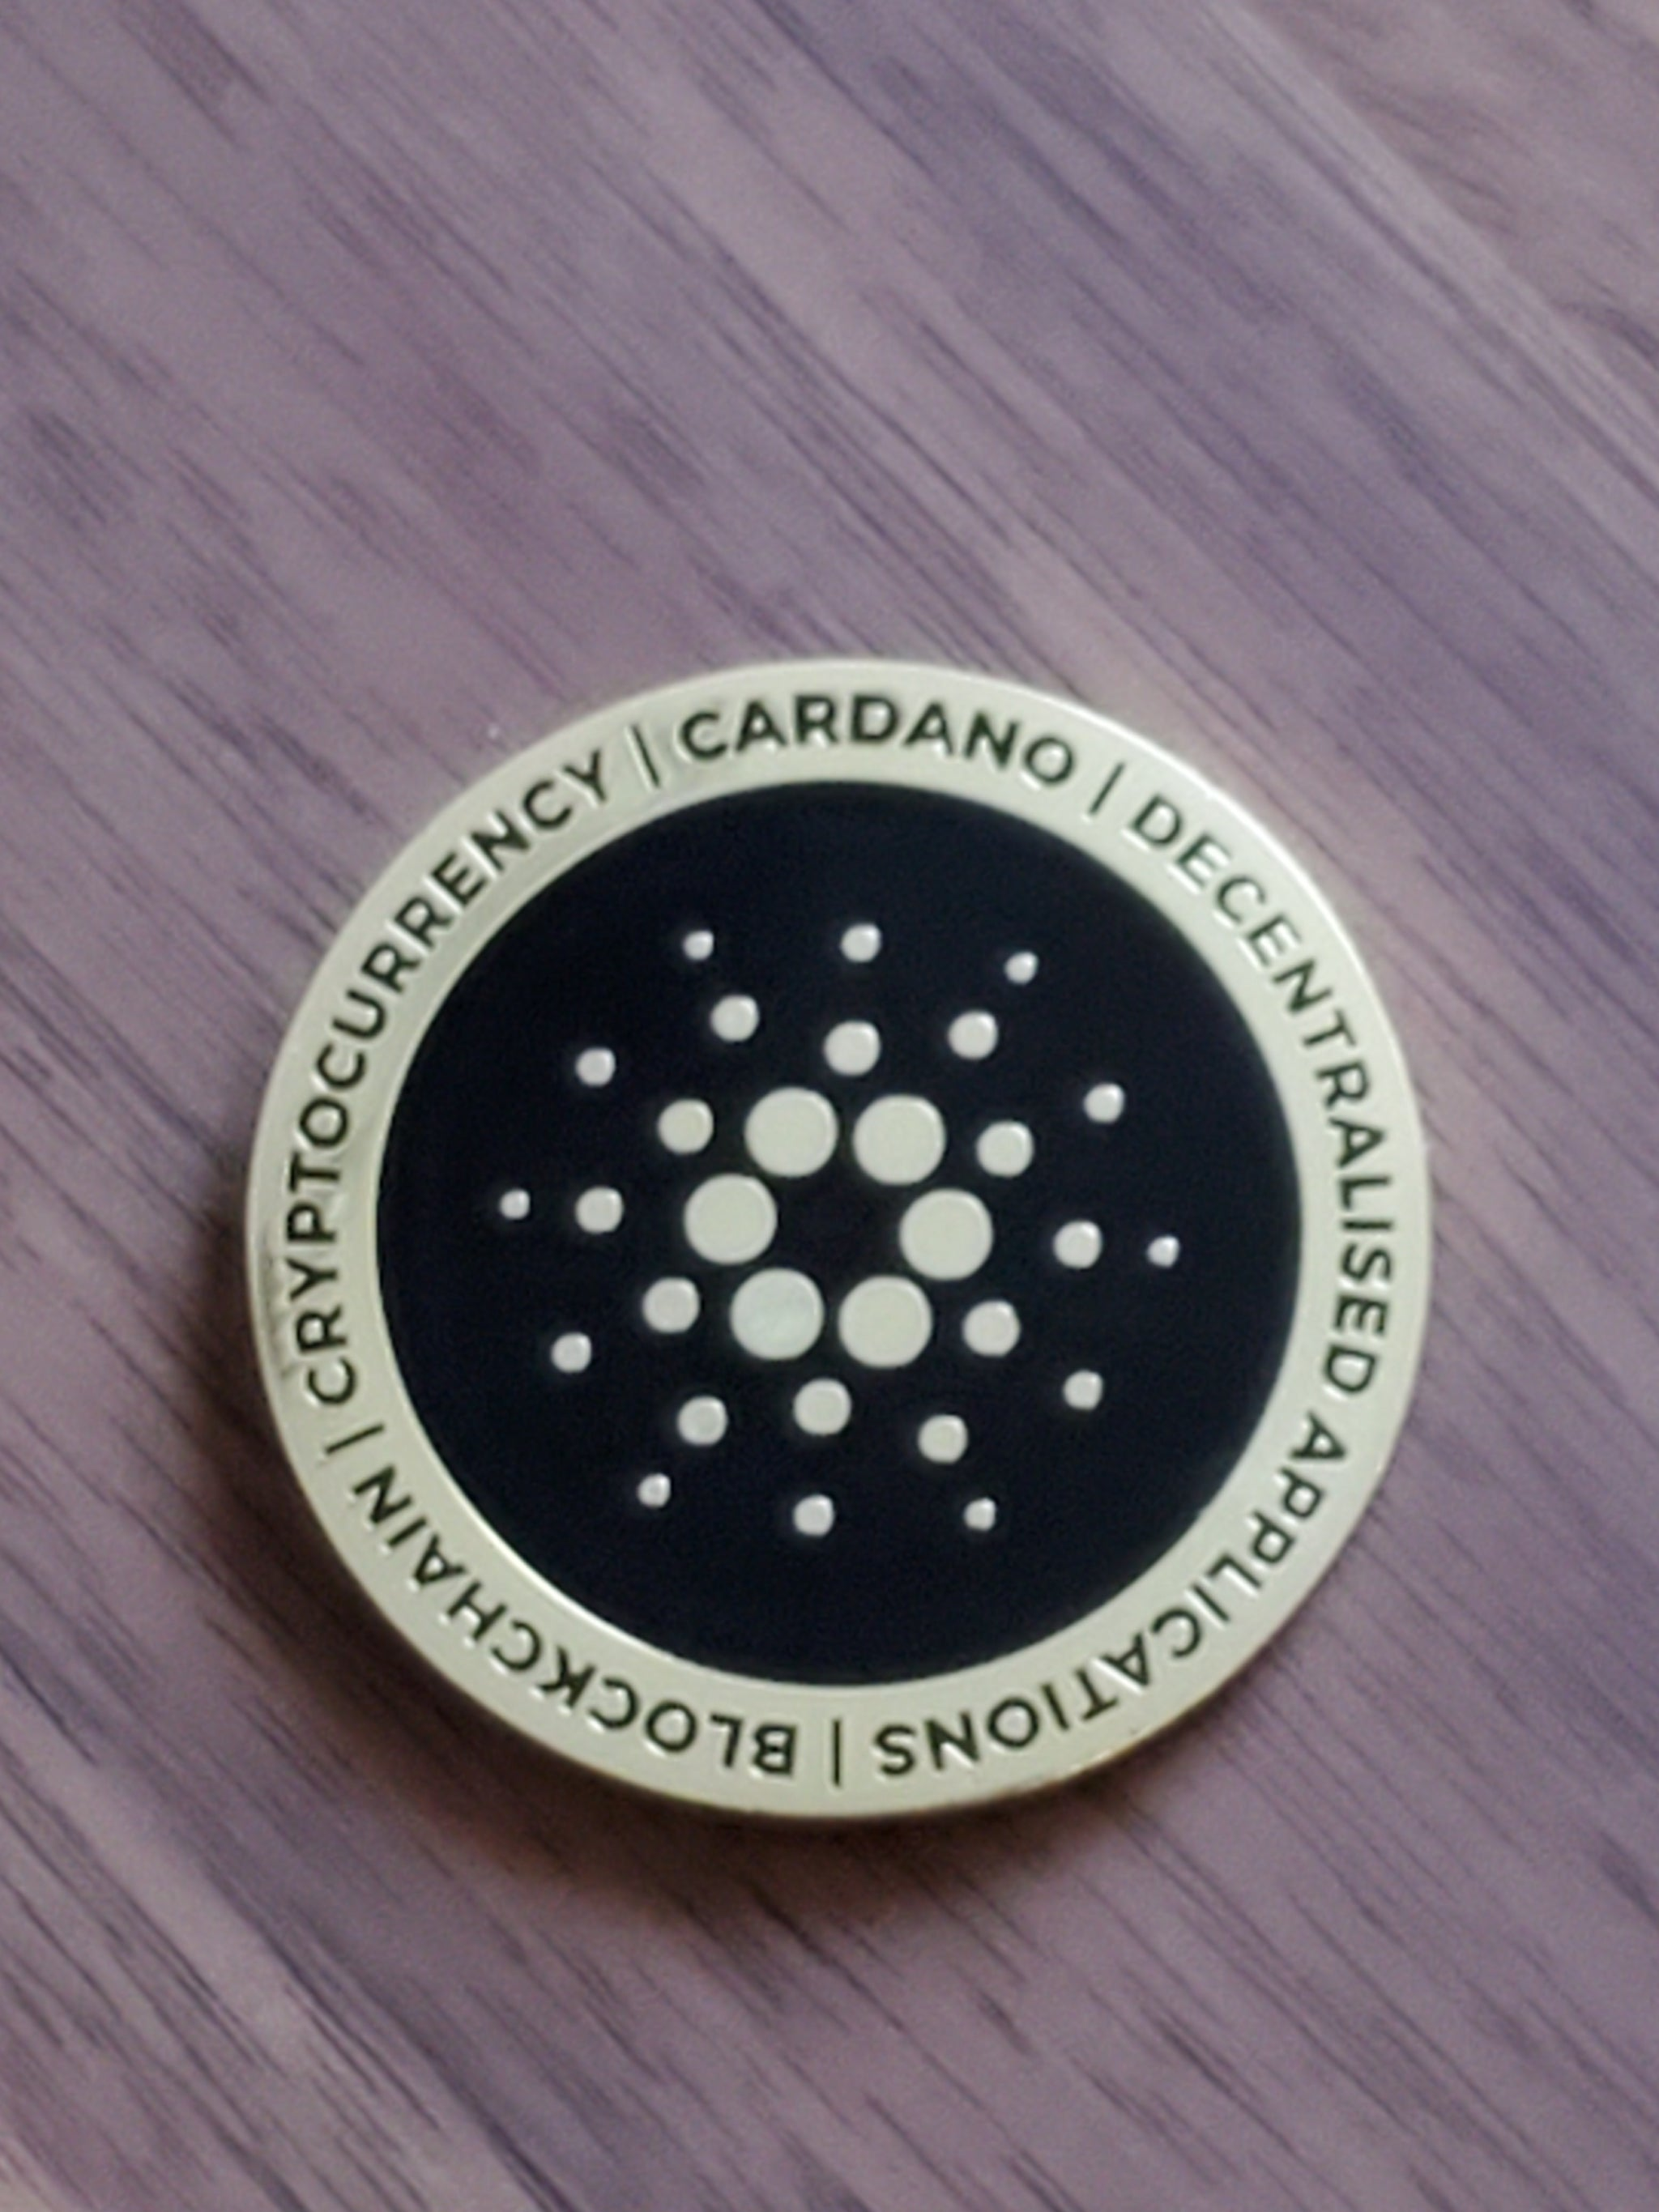 **SOLD OUT** Limited Edition Cardano Coin